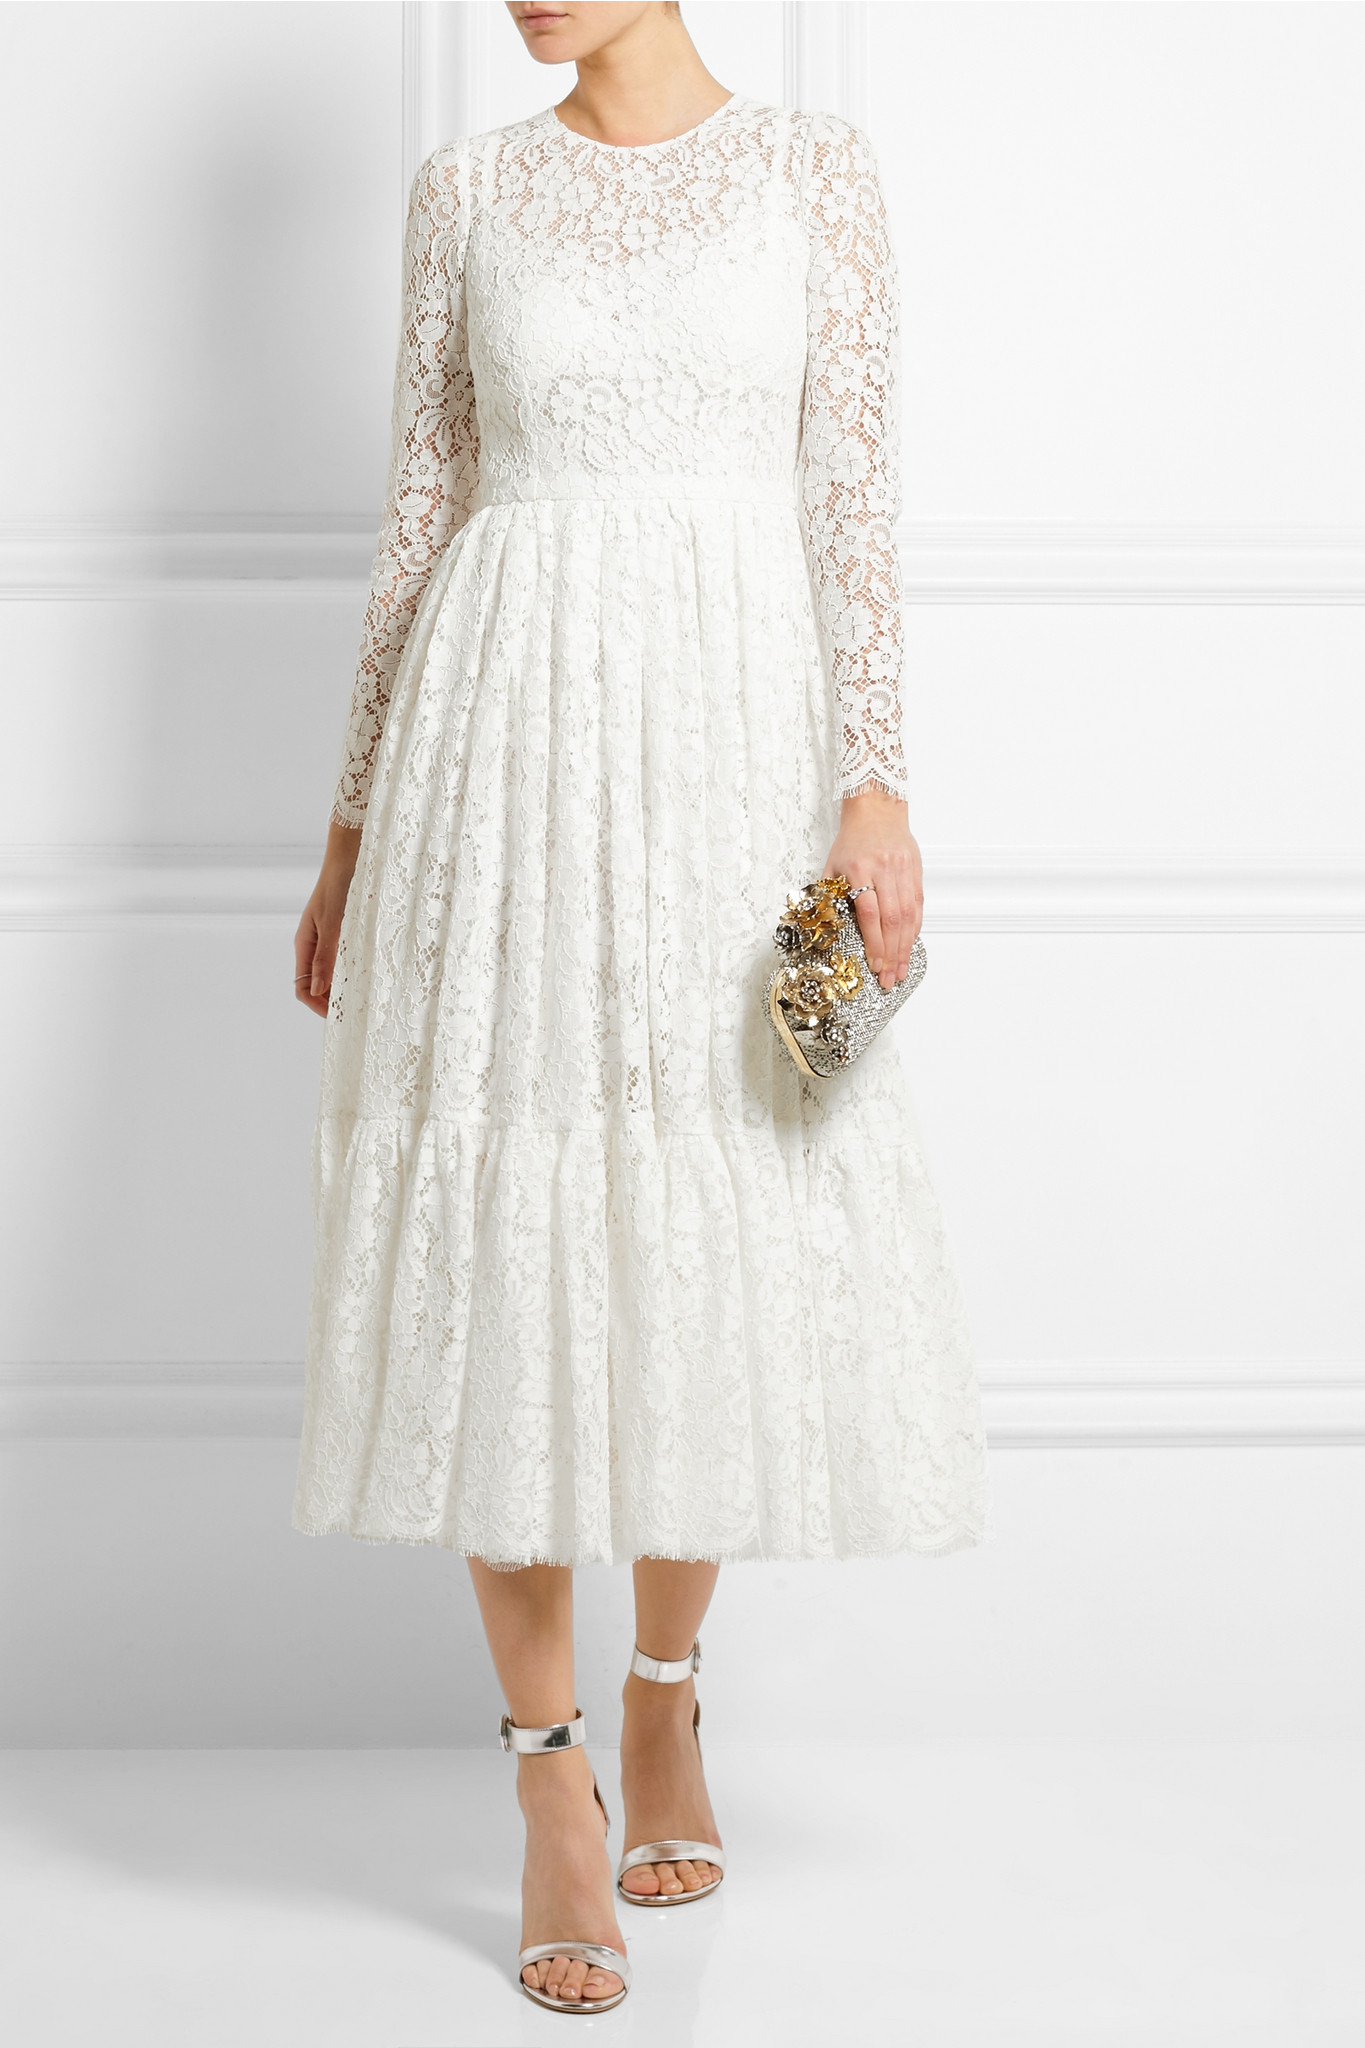 Fashion week Gabbana and Dolce white lace dress for girls